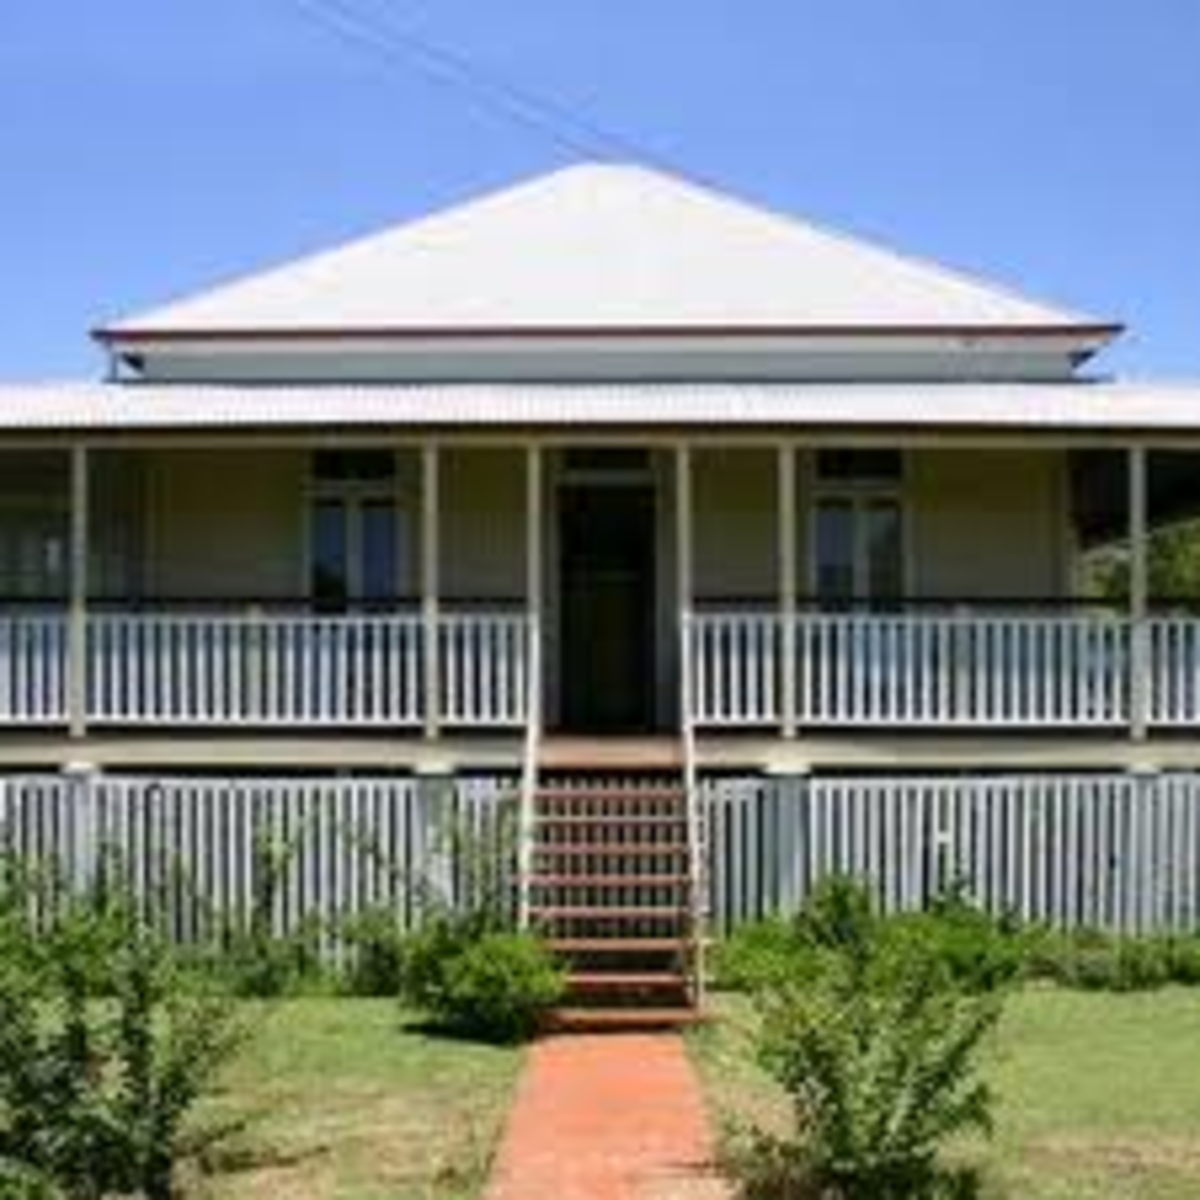 This is  a typical workers cottage in Brisbane, it is a smaller version of the real Queens-lander just because it is small and more affordable. Anyhow this is how my house was like when it was near new, but today it went through some alterations.